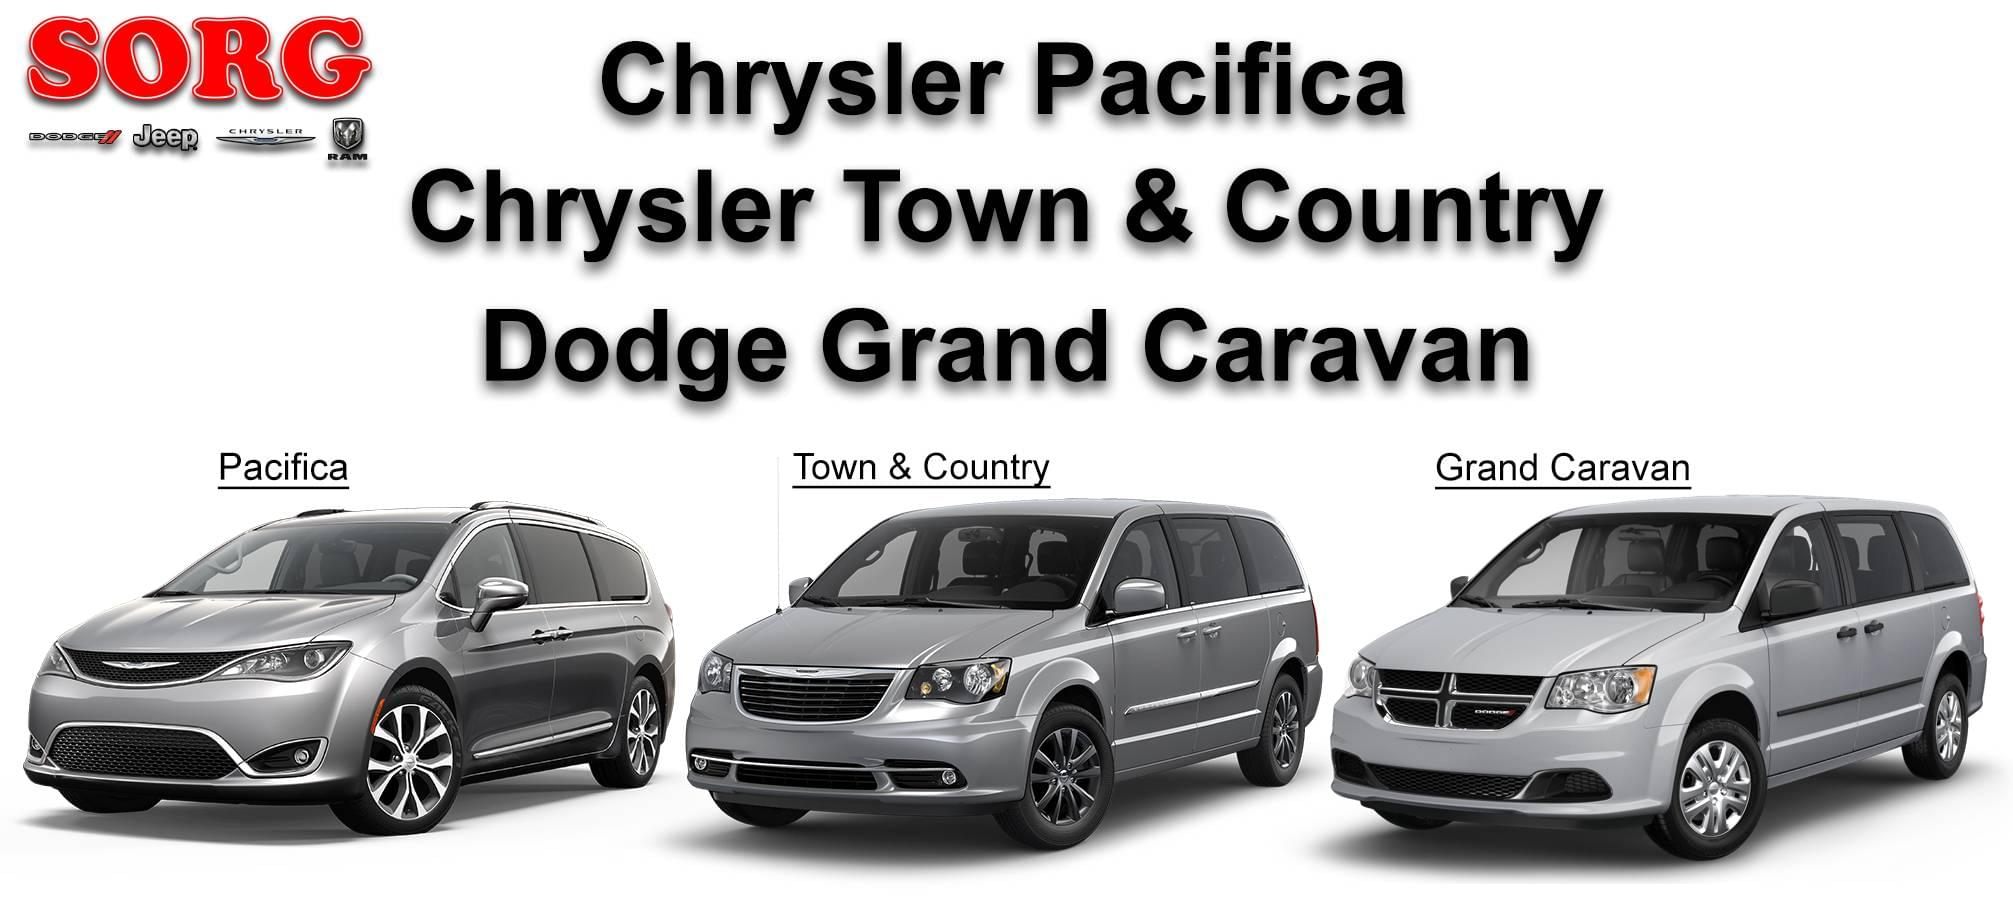 Comprehensive Review: Chrysler Pacifica, Chrysler Town